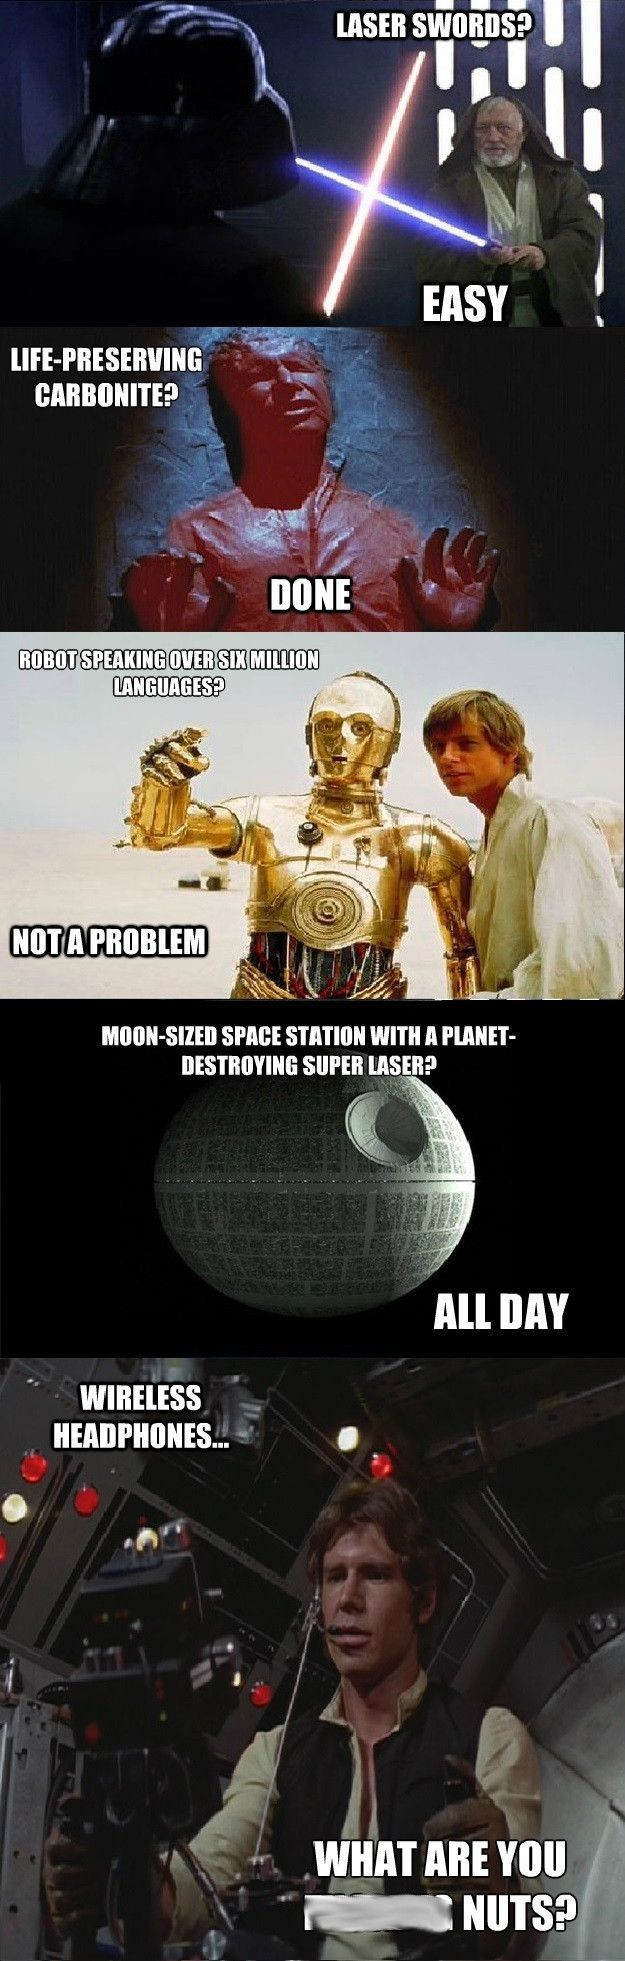 Star Wars technology...XD Hahaha, I never noticed this! Probably seemed too far-fetched at the time.